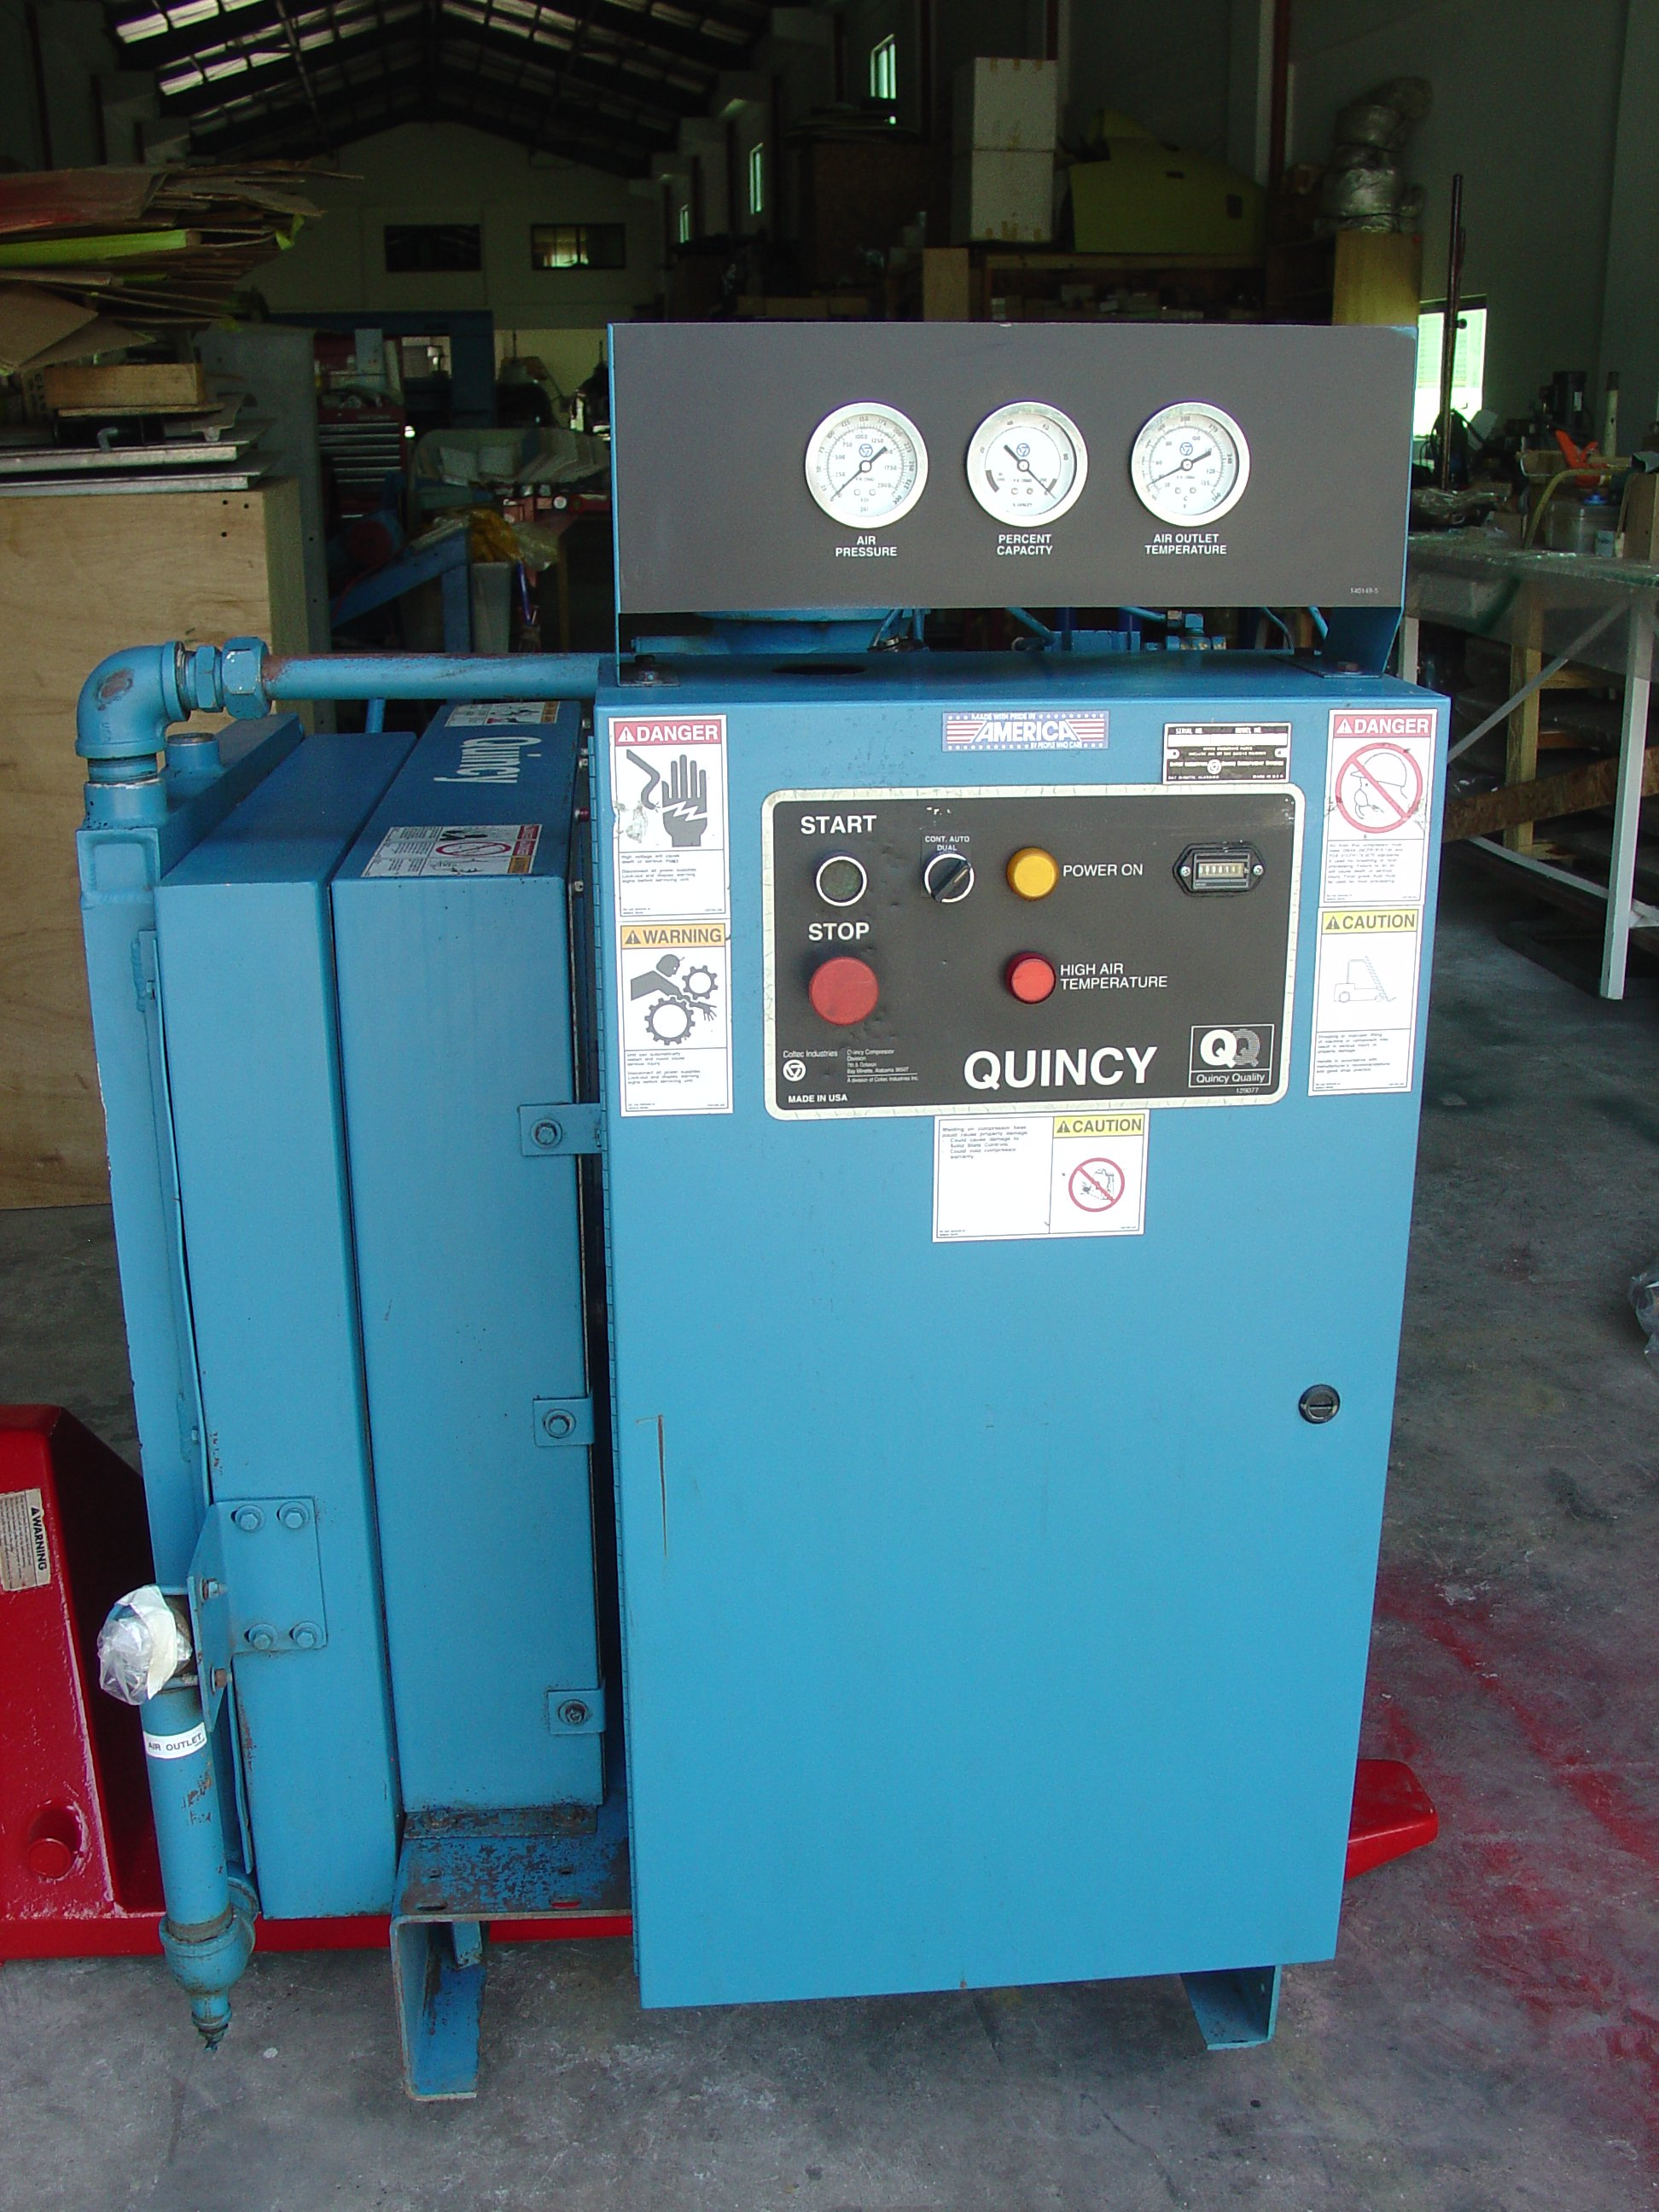 FOR SALE: FOR SALE QUINCY AIR COMPRESSOR WITH AIR COOLING UNIT